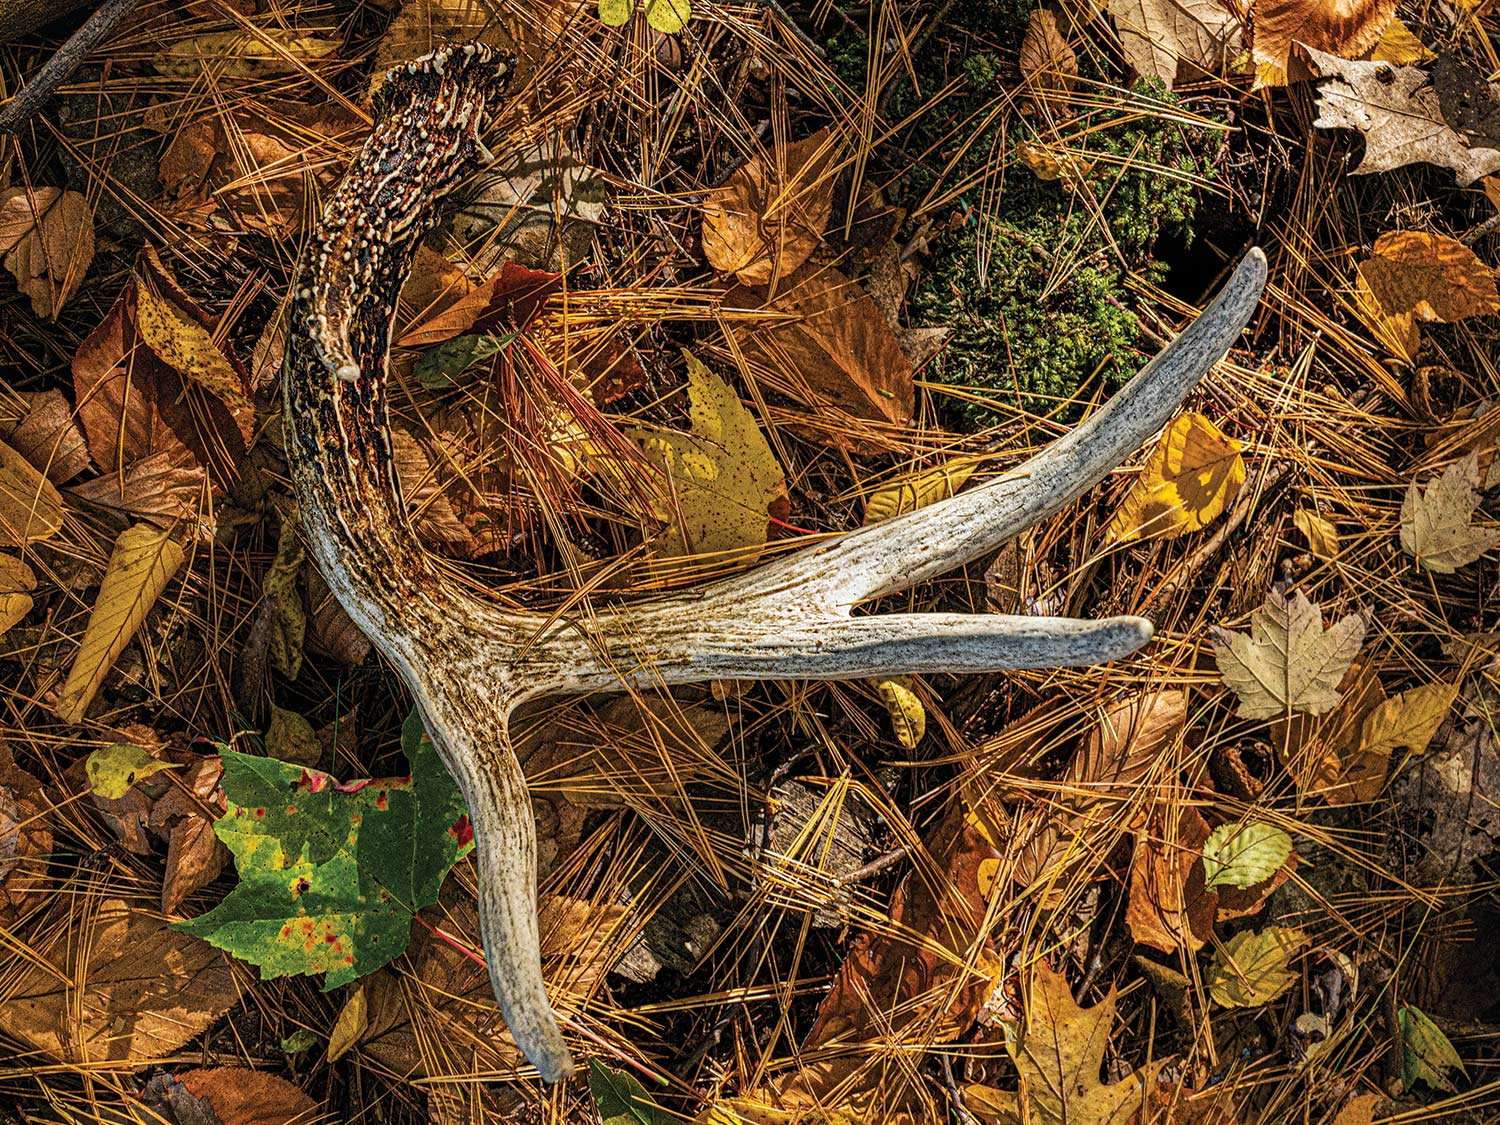 A shed deer antler lying in leaves and pines.